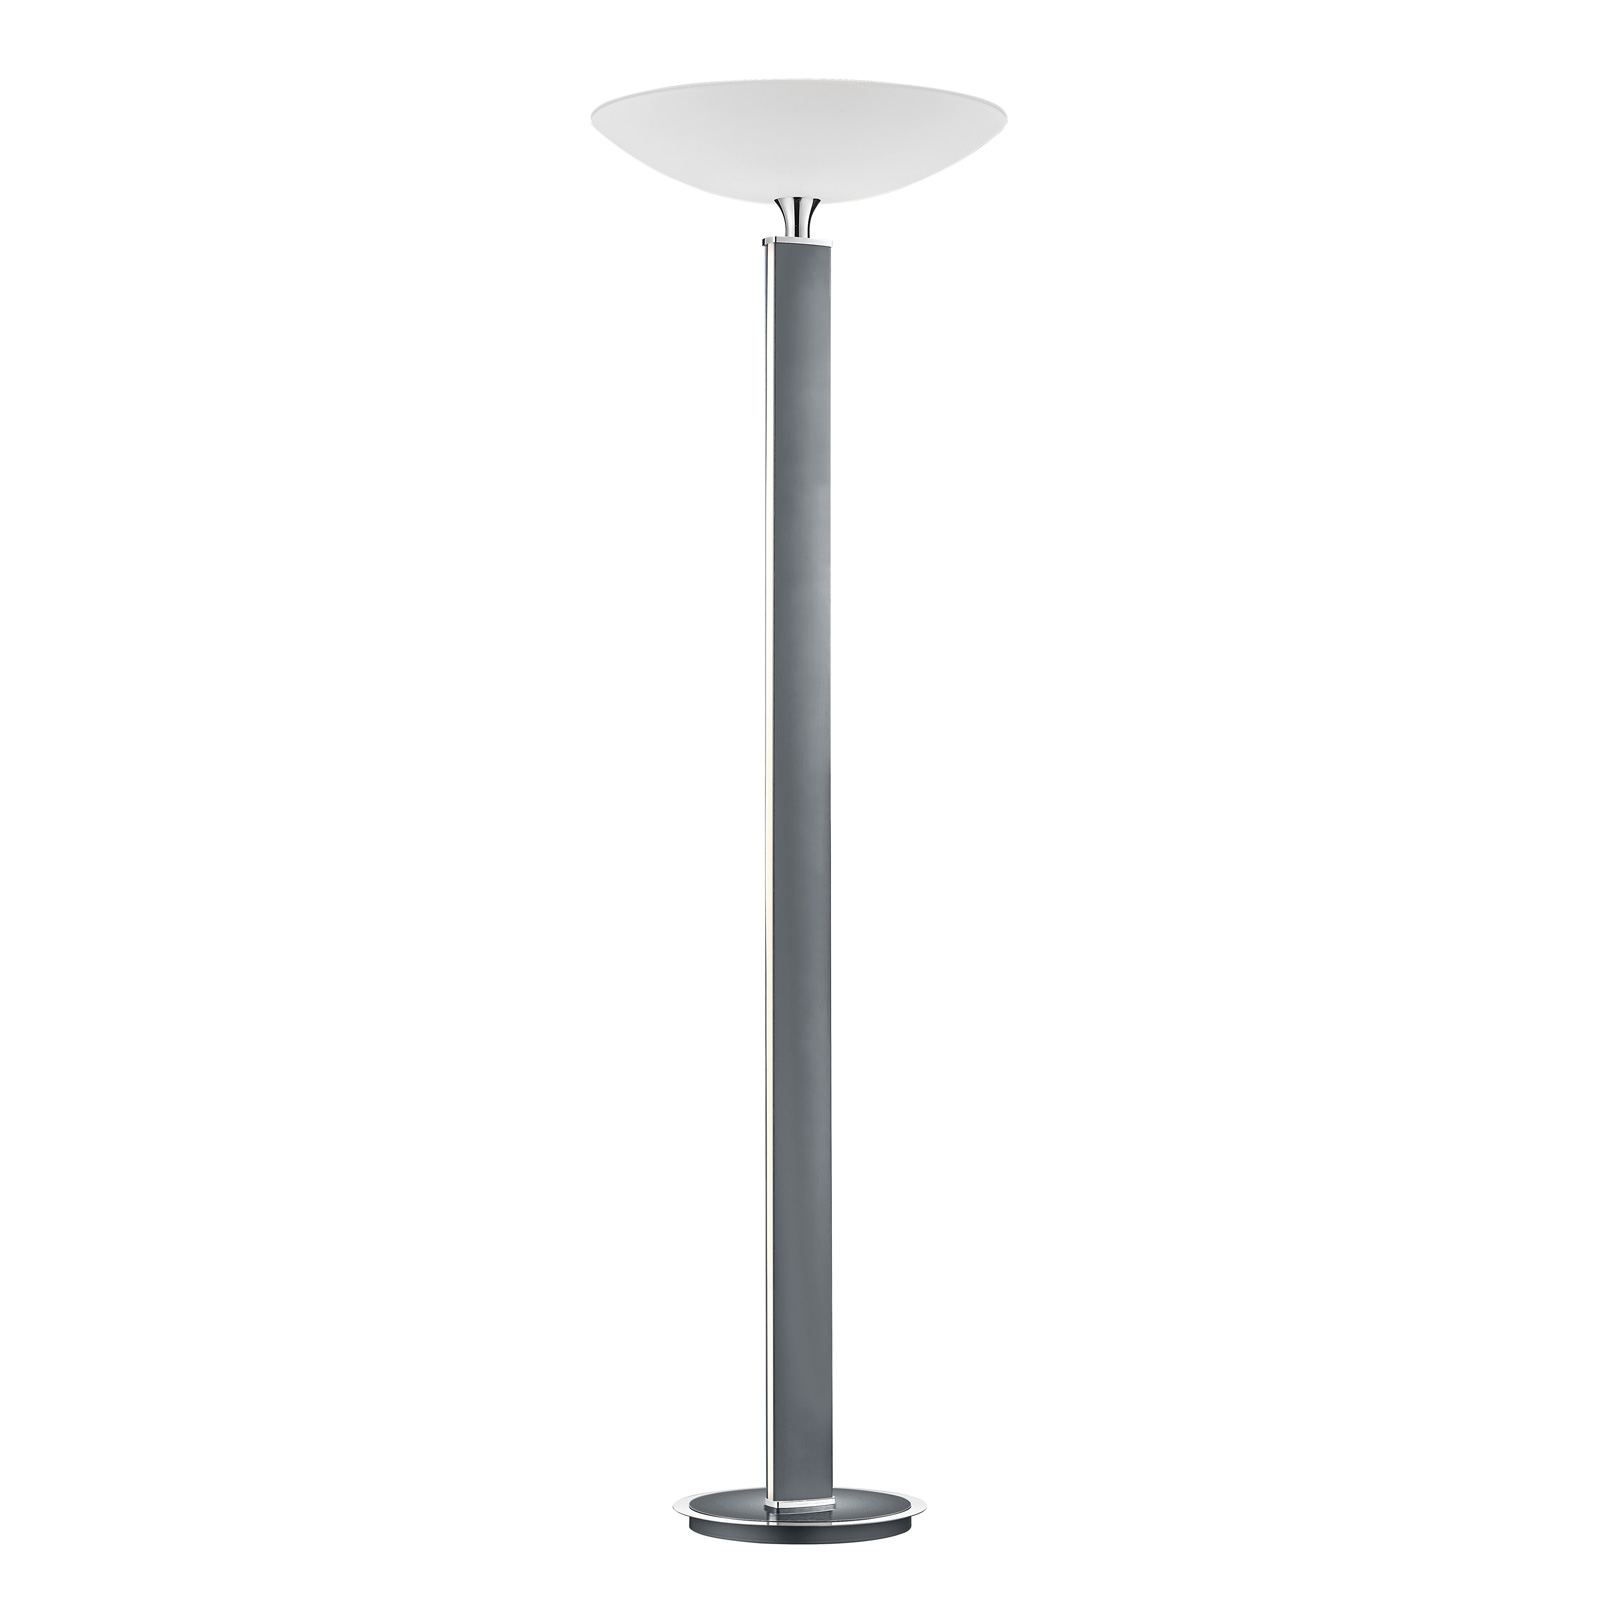 BANKAMP Pure F lampadaire indirect LED, anthracite